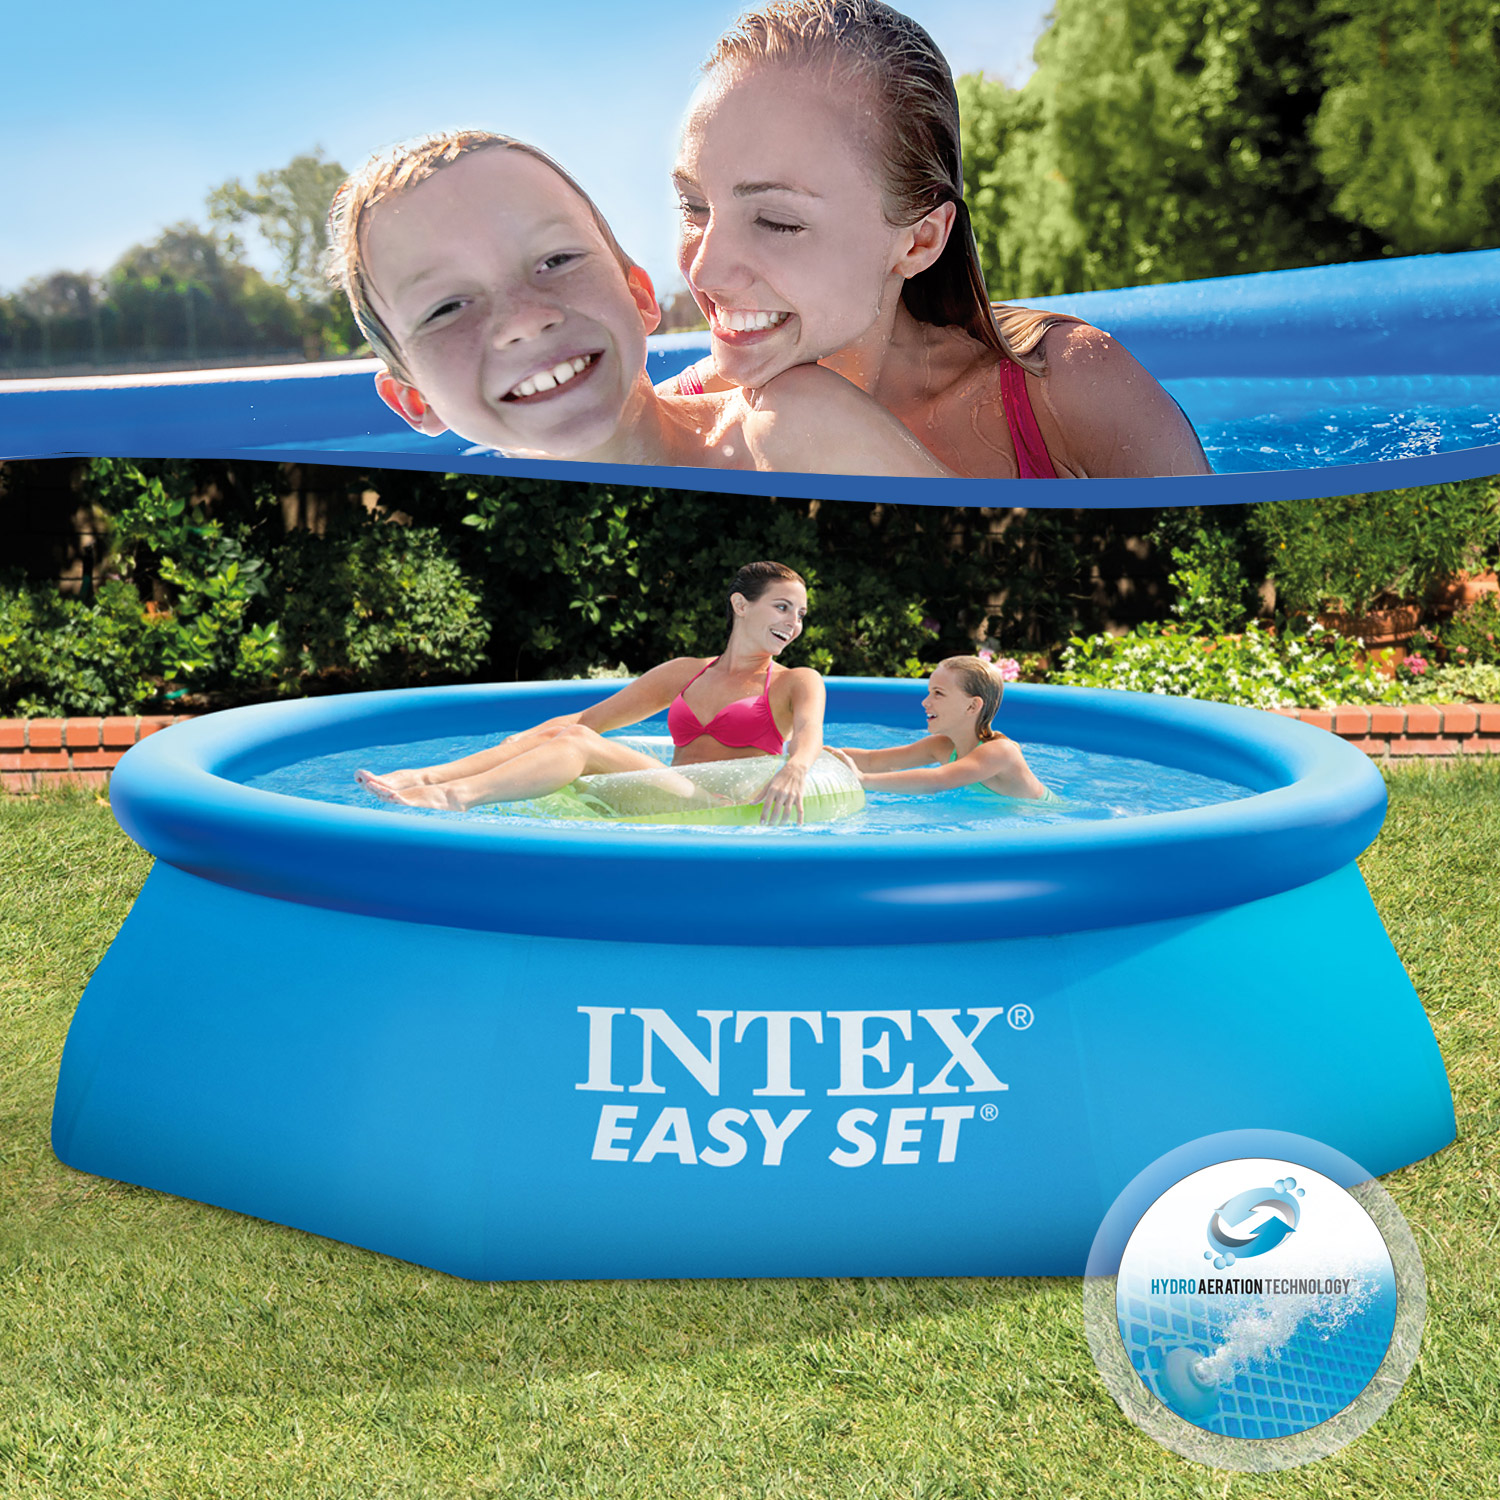 Intex piscine autoportante swimming pool easy 244 305 366 for Piscine intex 244 avec filtre